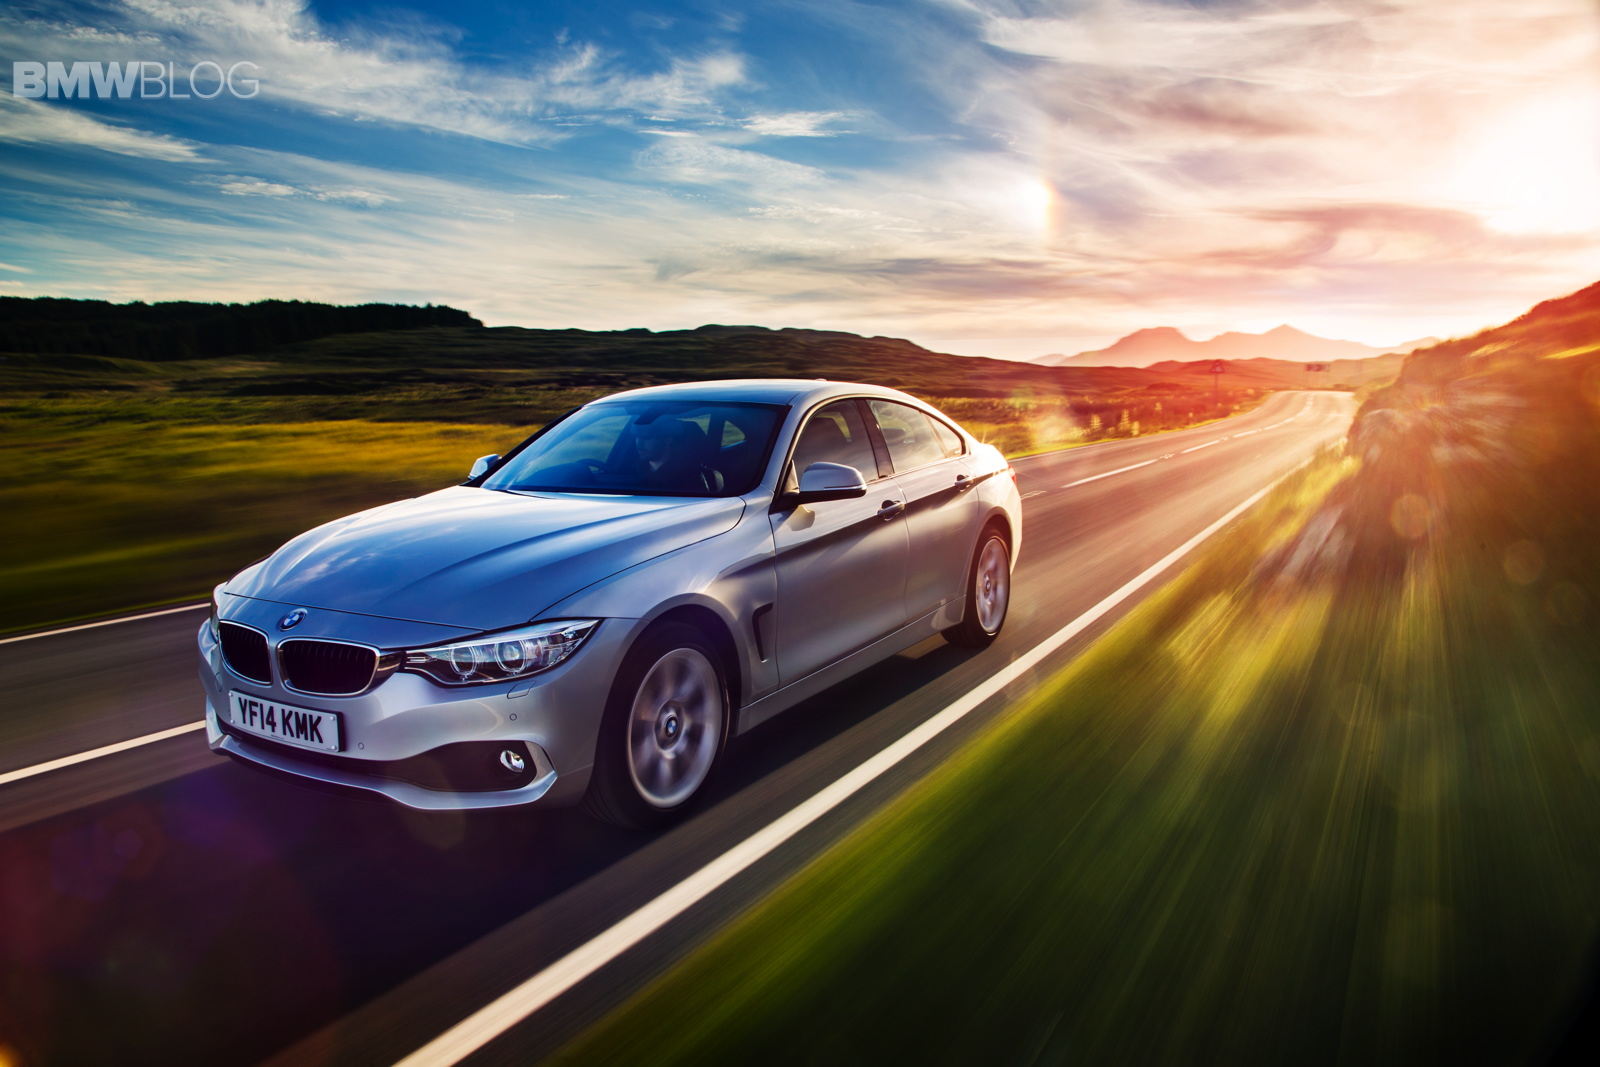 2015 bmw 4 series gran coupe images 7